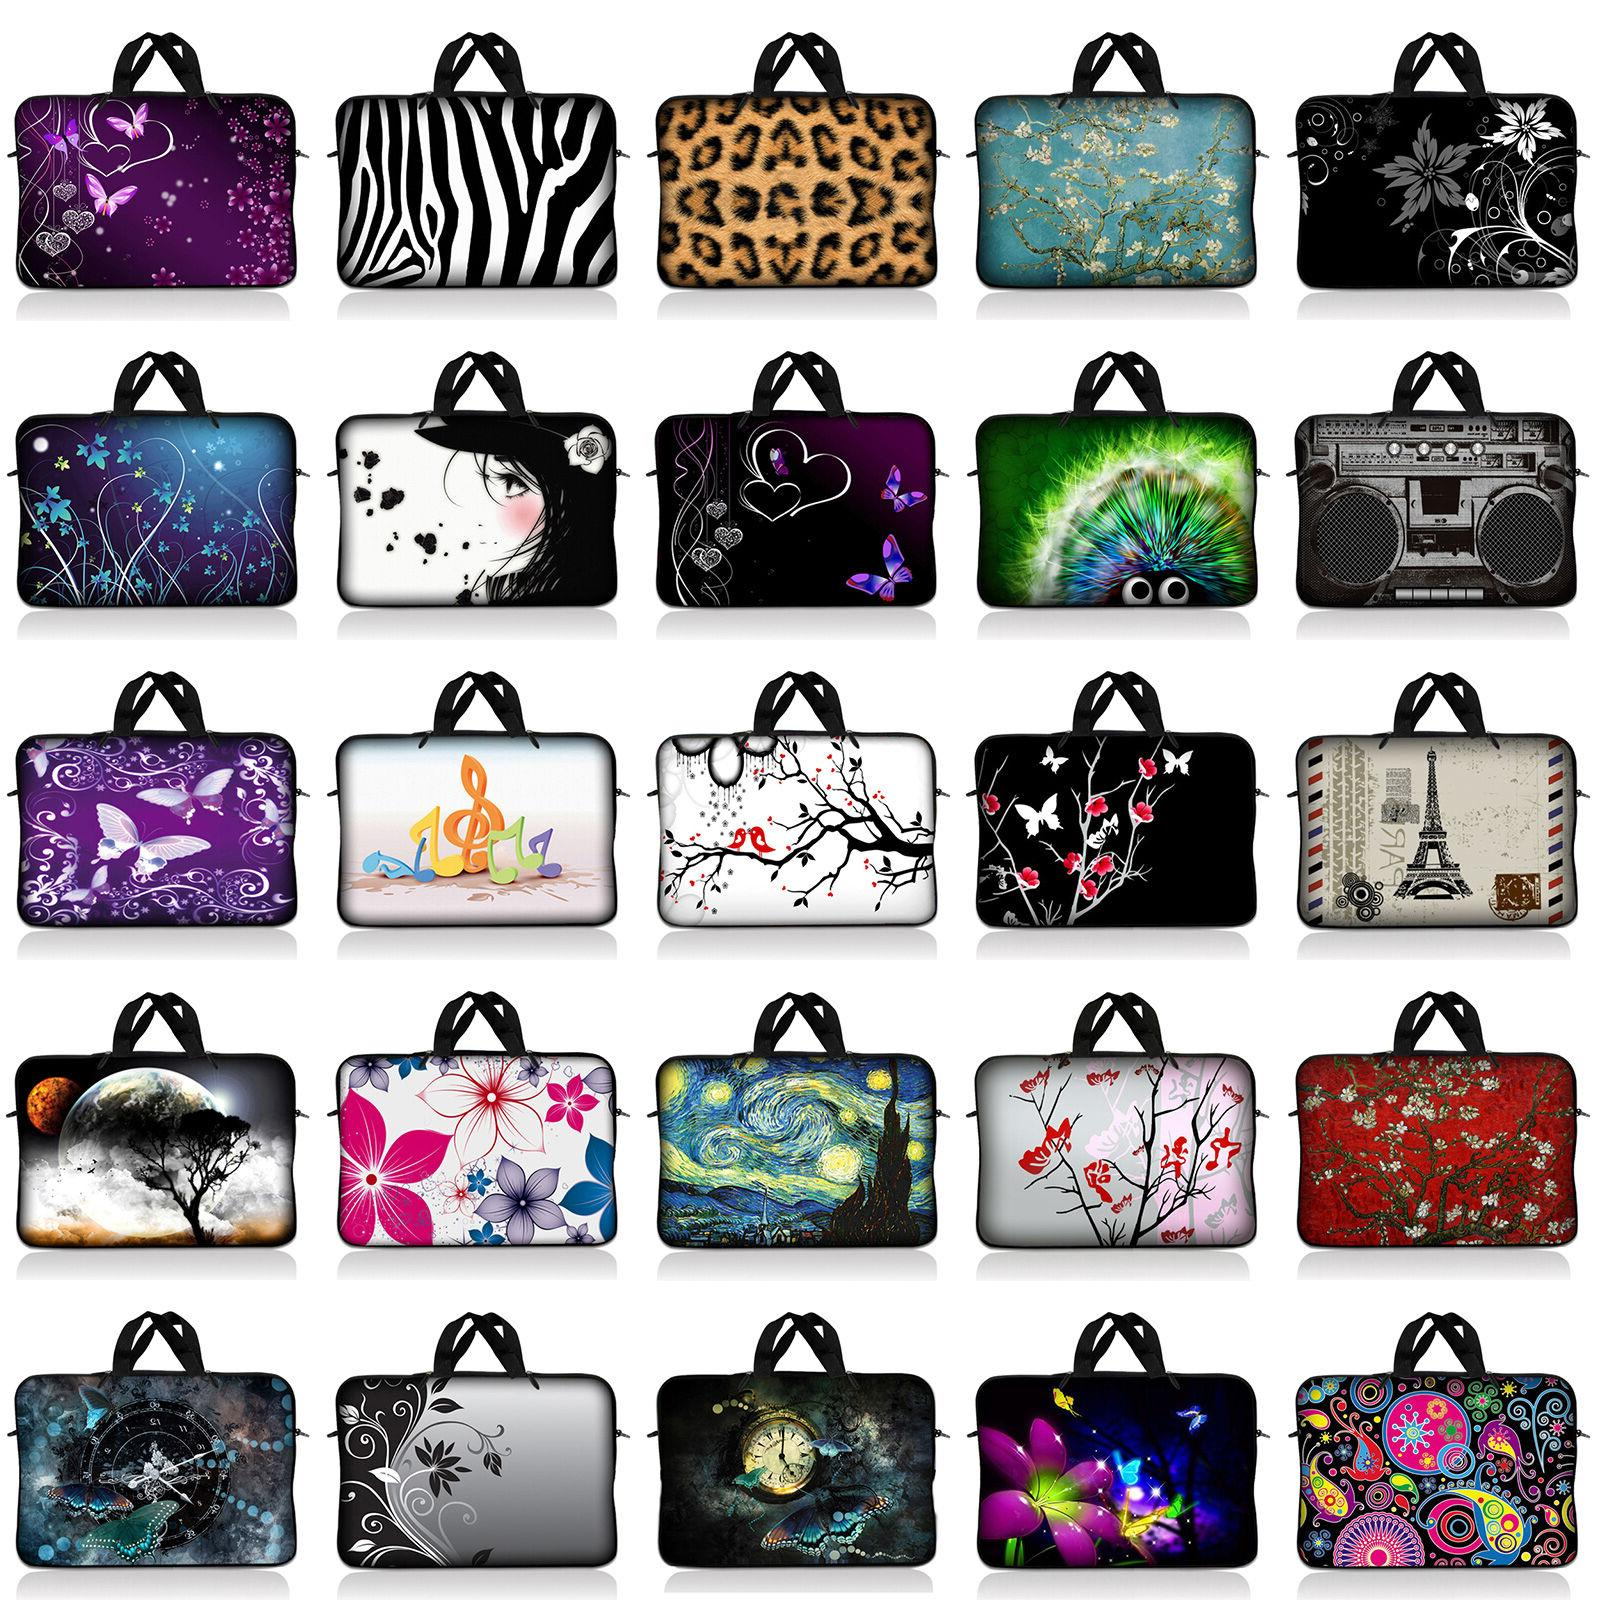 Laptop Sleeve 15.6 Bag Case 15.4 15.6 HP Macbook